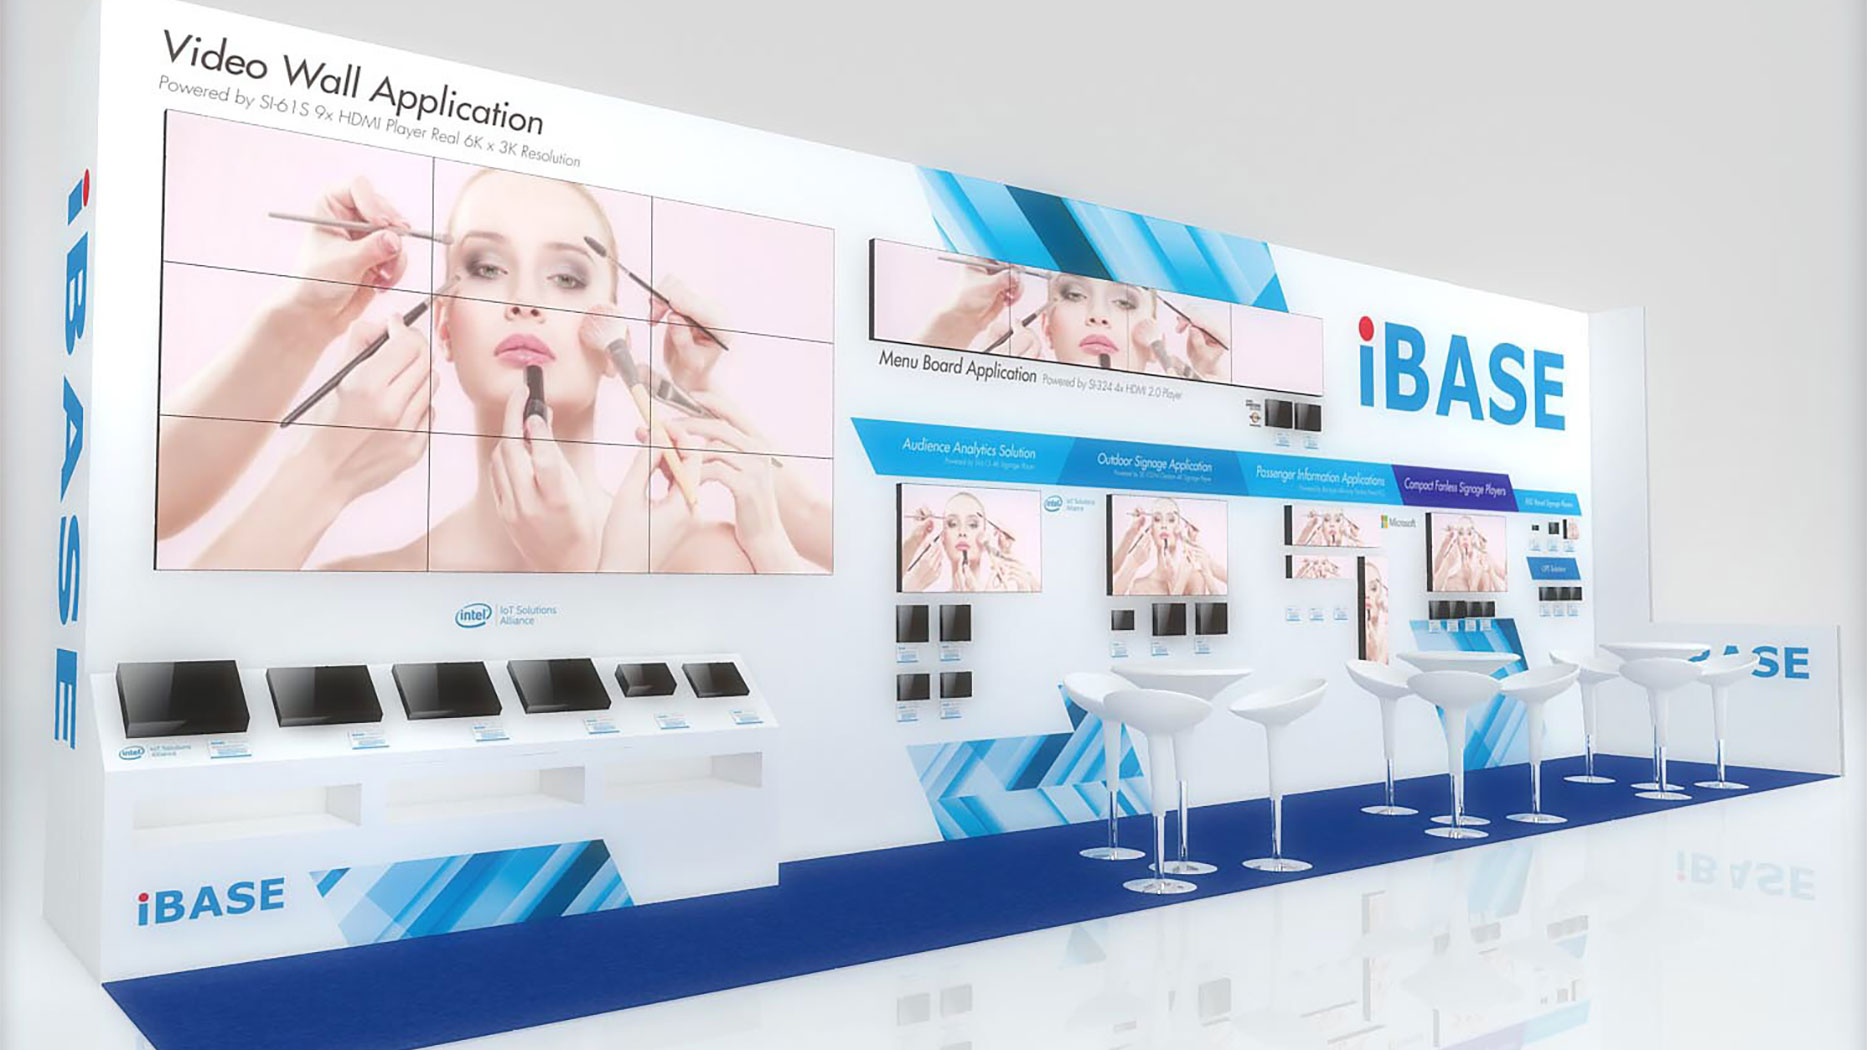 Matrox-powered IBASE SI-61S player PC to drive 3x3, 18.7 MP video wall for digital signage applications at DSE 2018.